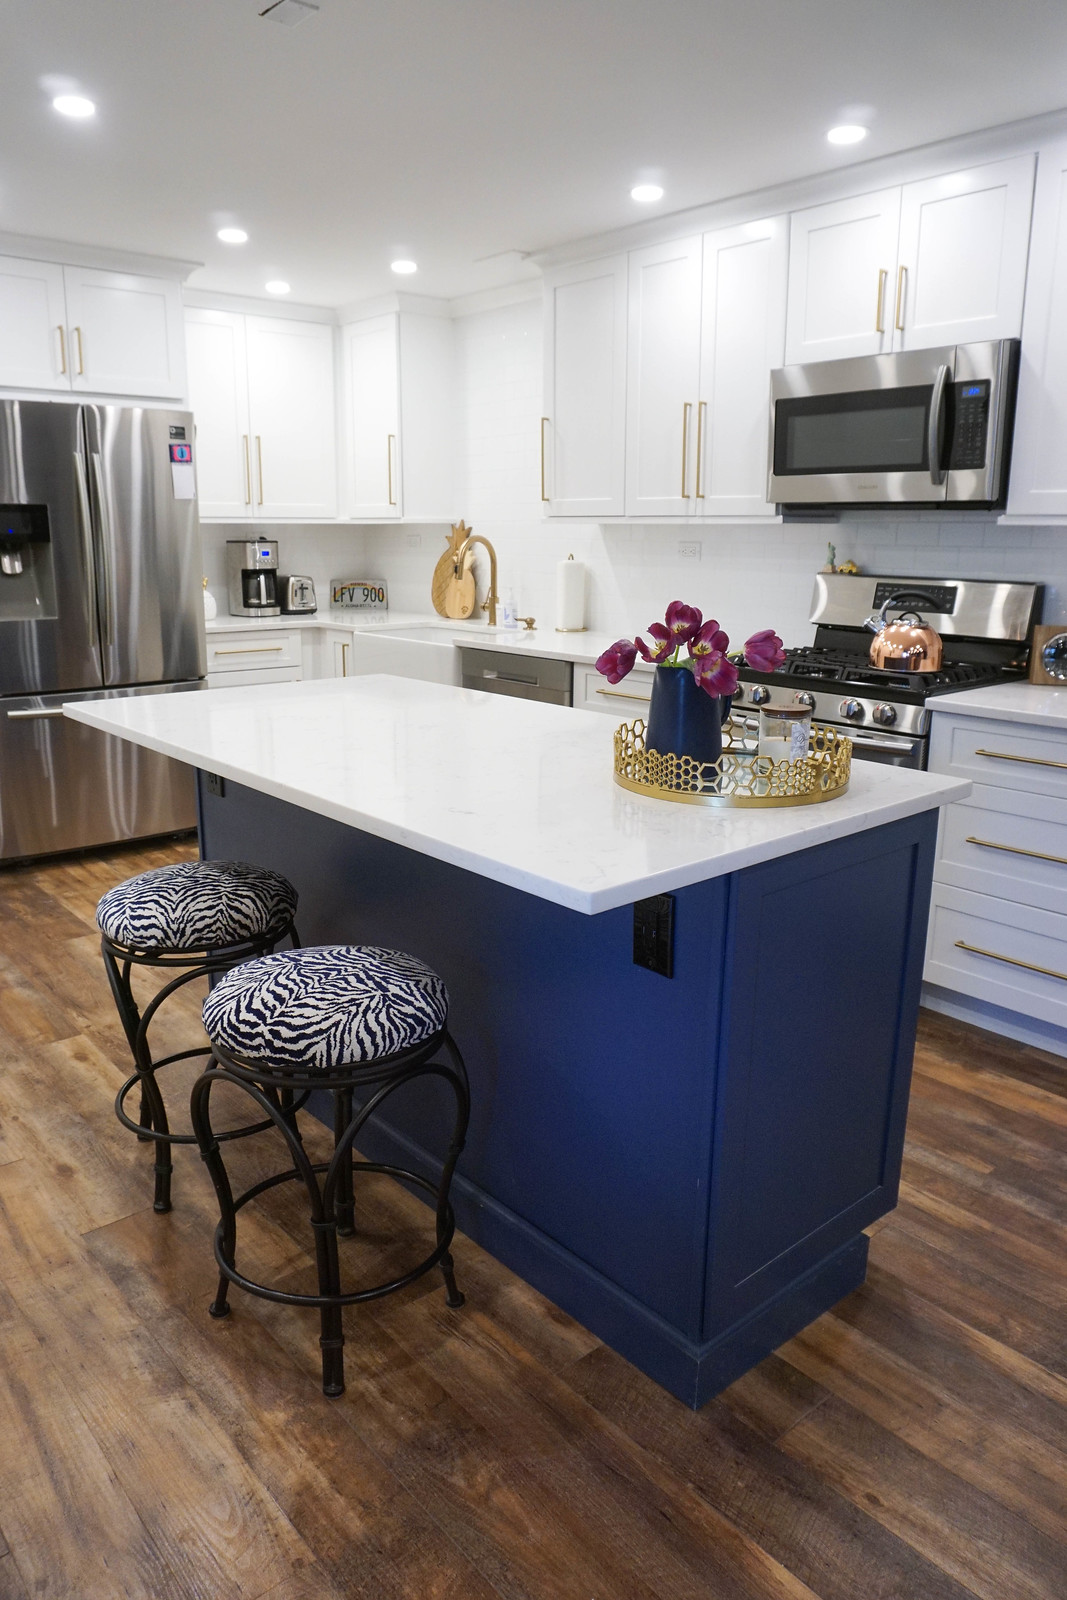 White Kitchen Cabinets Gold Hardware Blue Island Cabinets White Countertops Stainless Steel Appliances